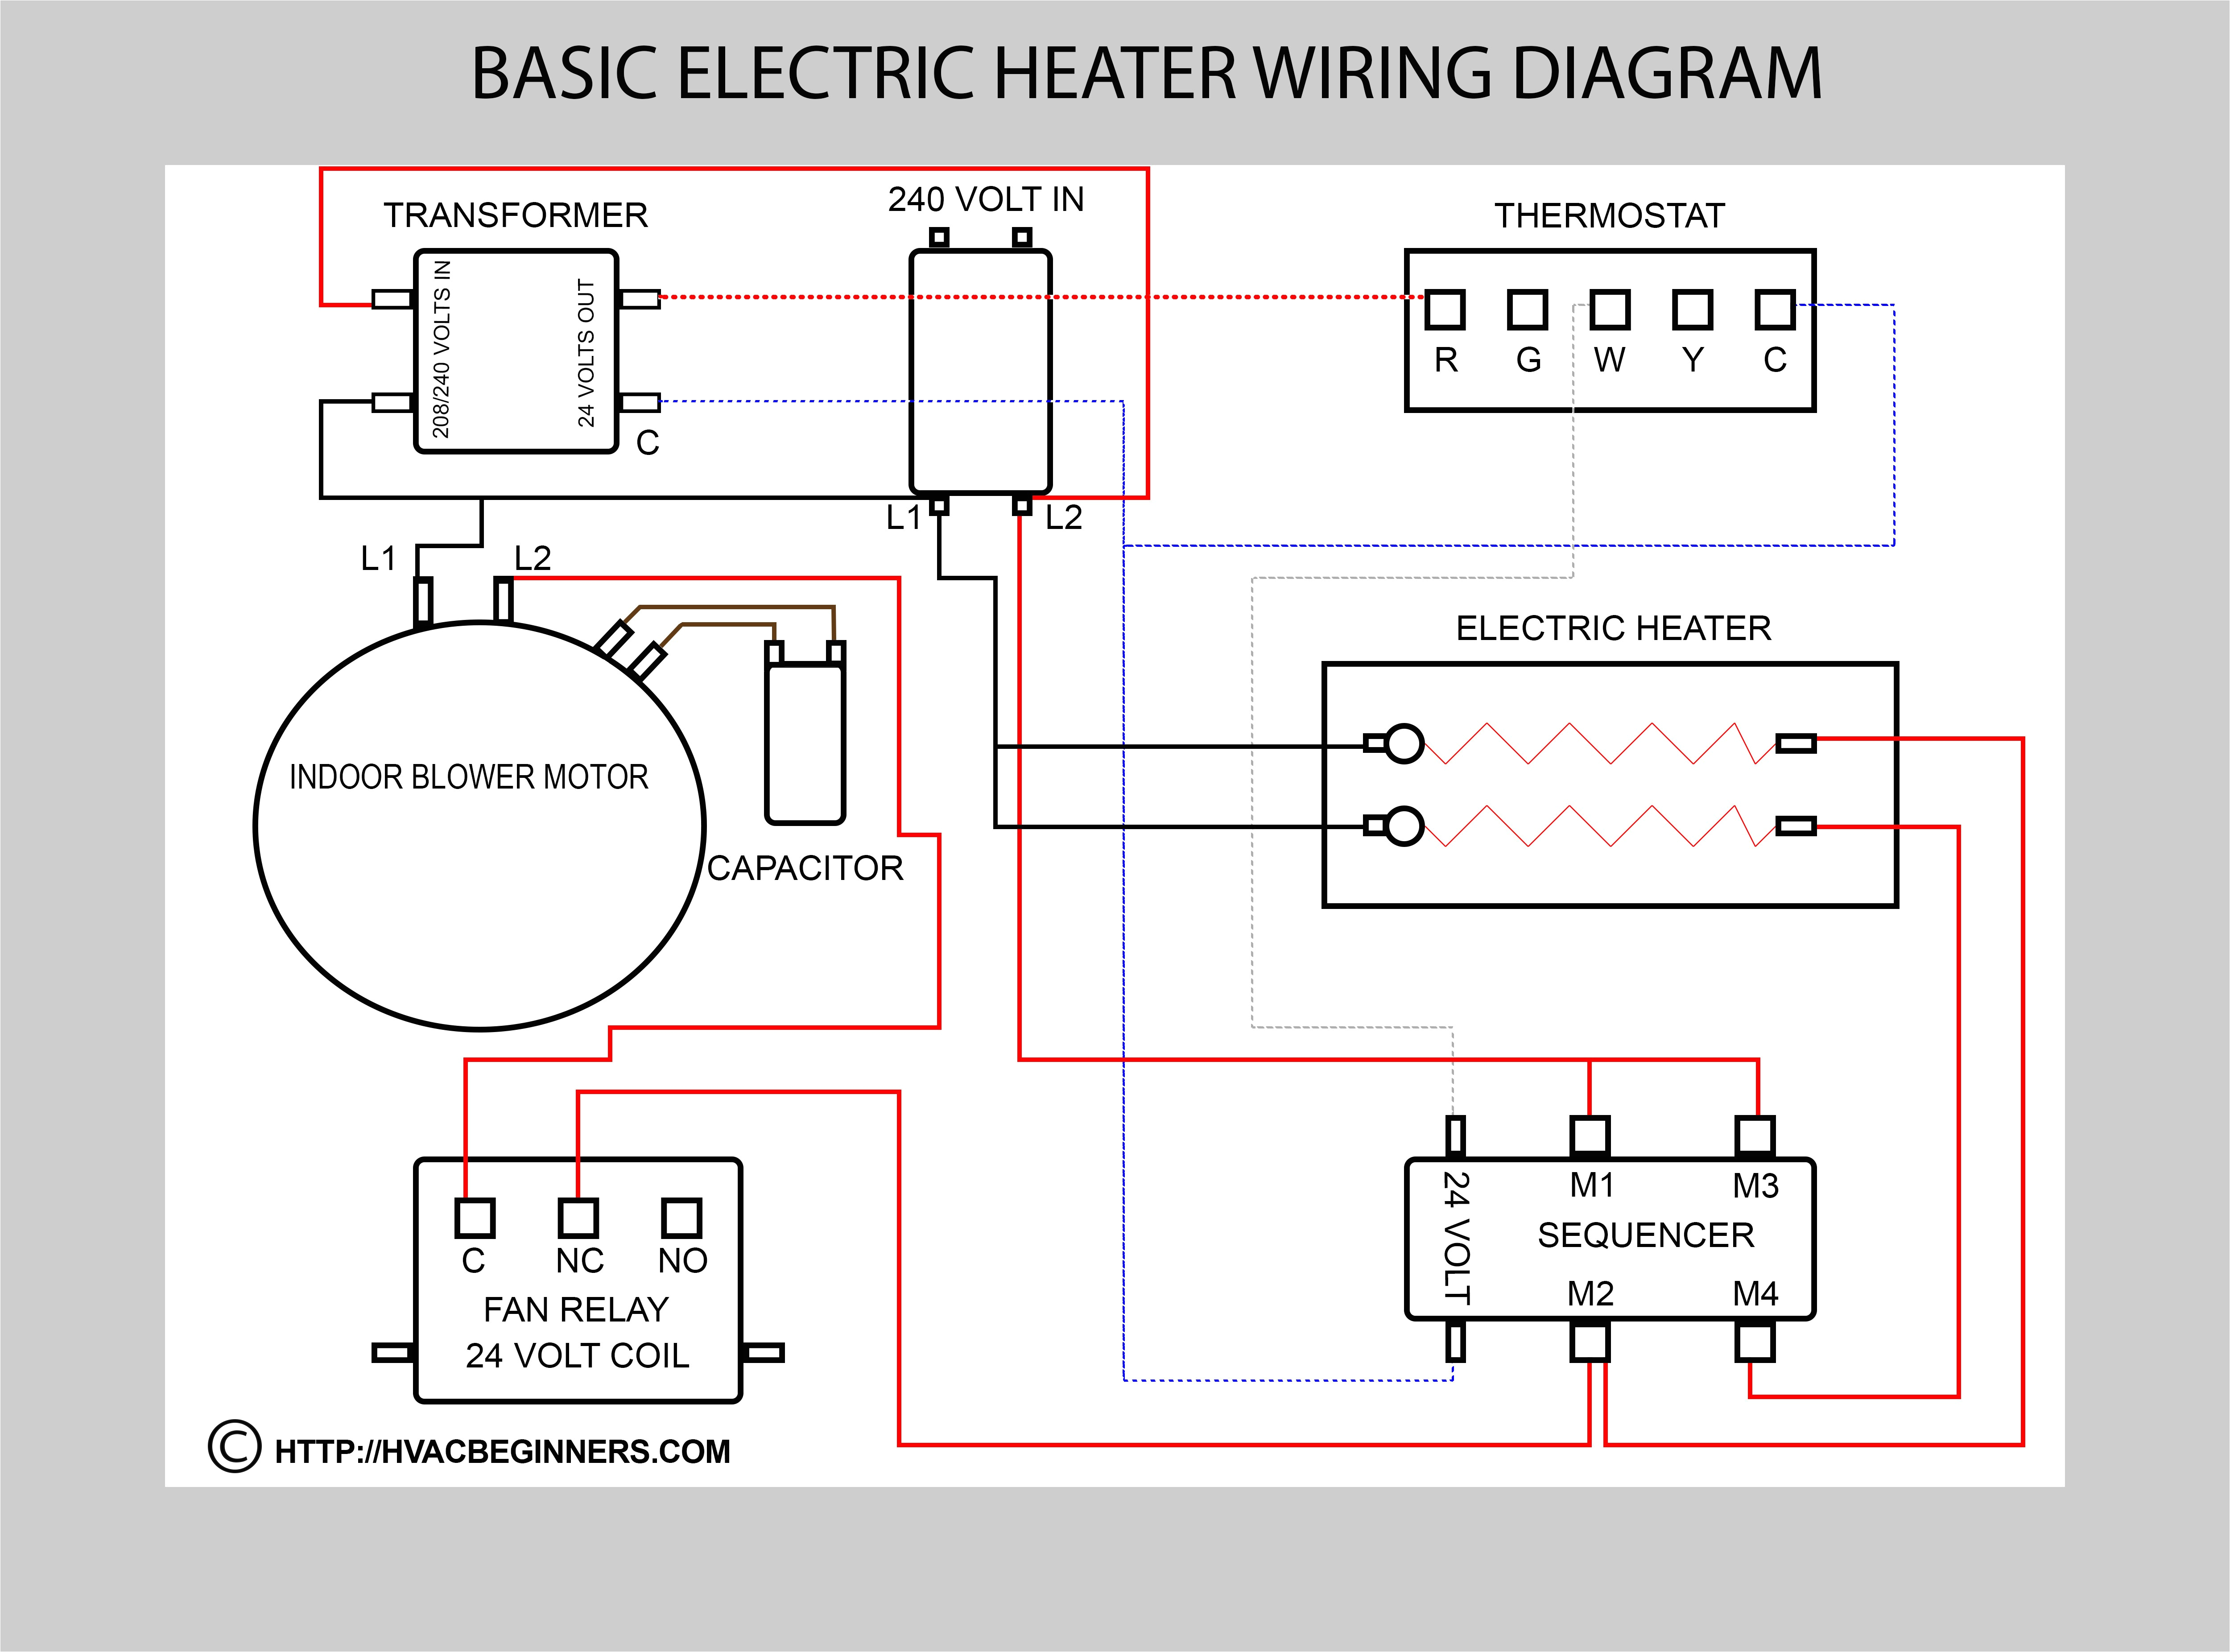 hvac training on electric heaters hvac training for beginnersthis is just to give you an idea